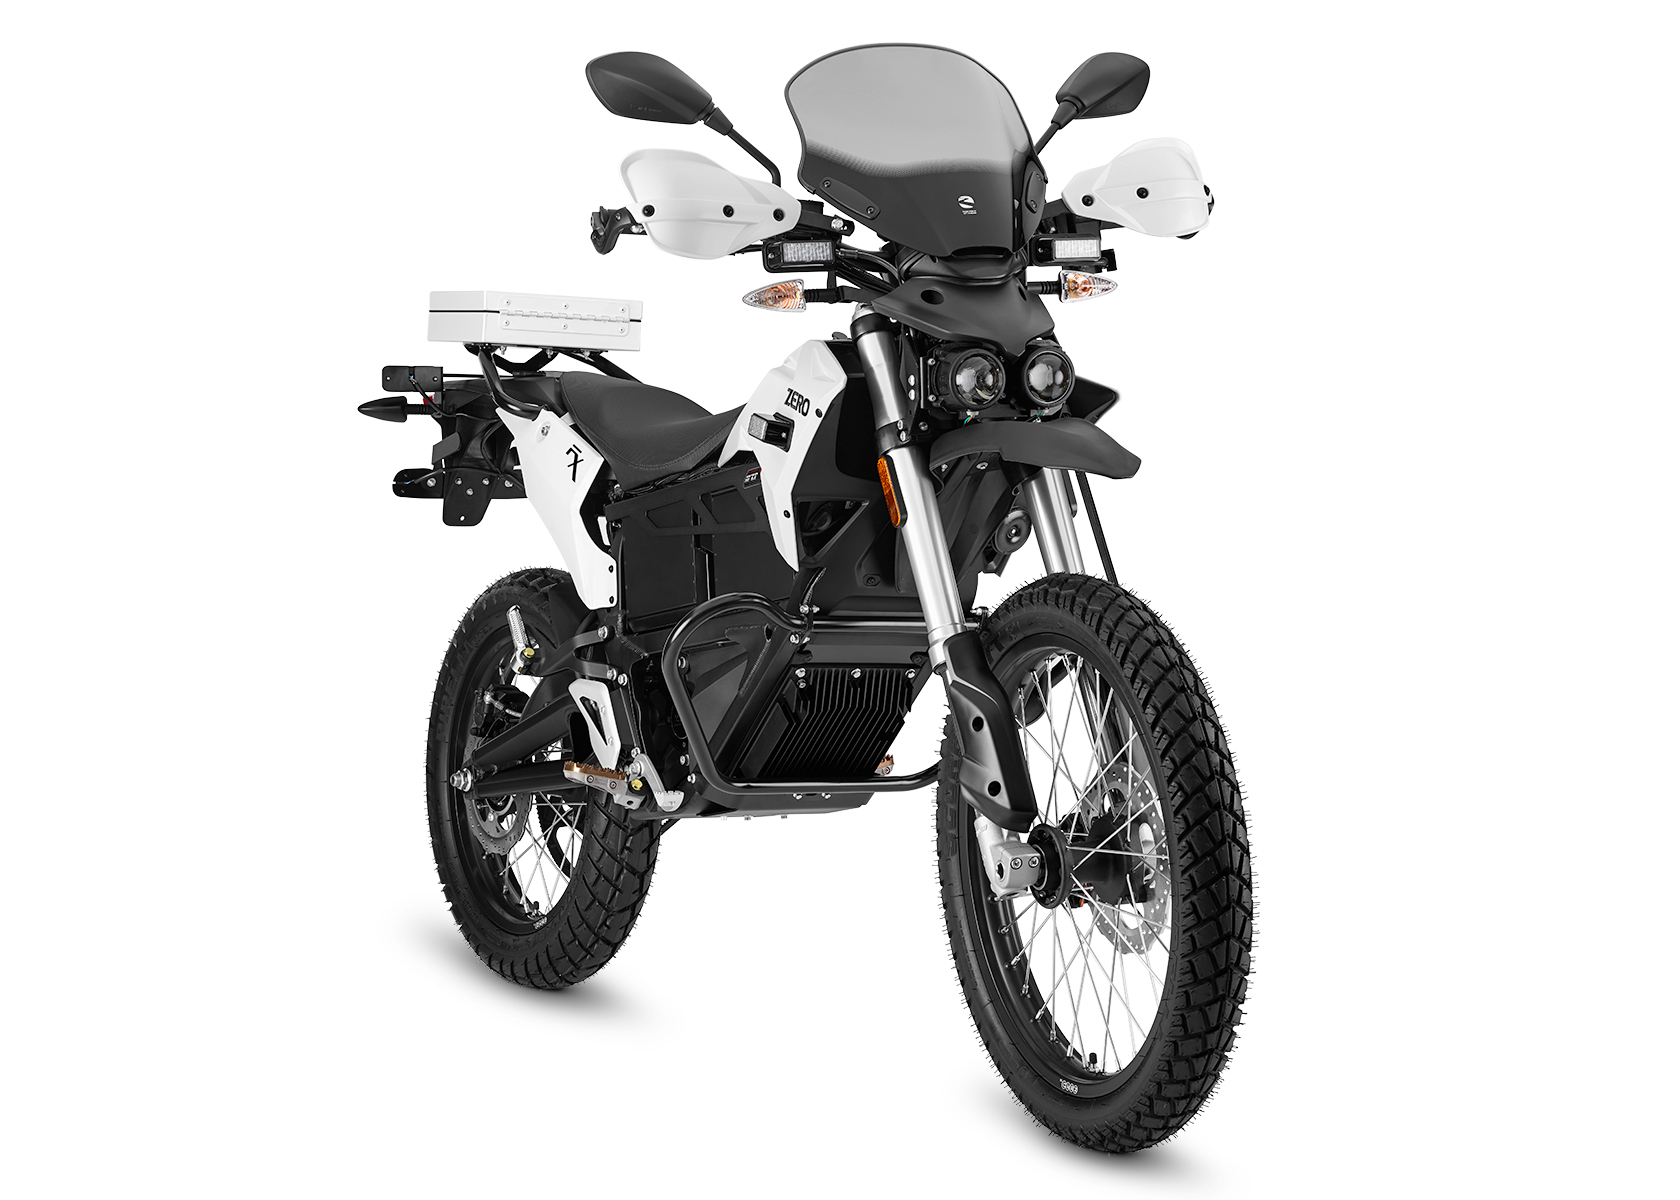 2015 Zero FXP Electric Motorcycle: Right Angle, White Background